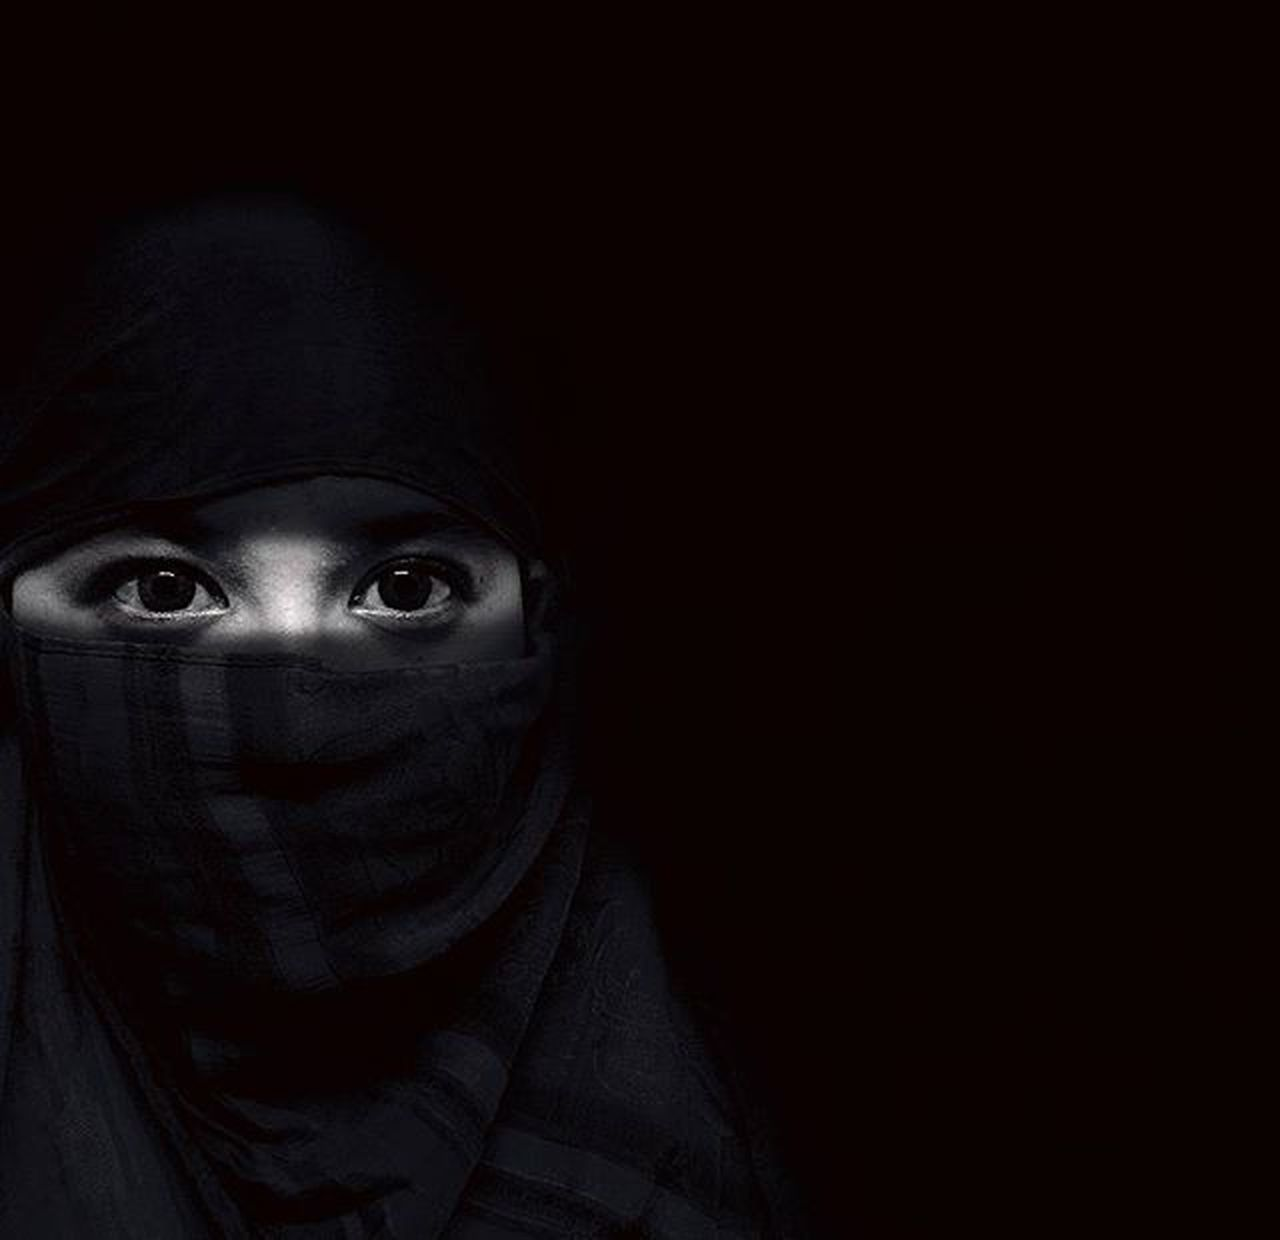 looking at camera, spooky, portrait, headshot, black color, halloween, one person, horror, adult, front view, adults only, human face, people, night, evil, human eye, one woman only, human body part, black background, only women, young adult